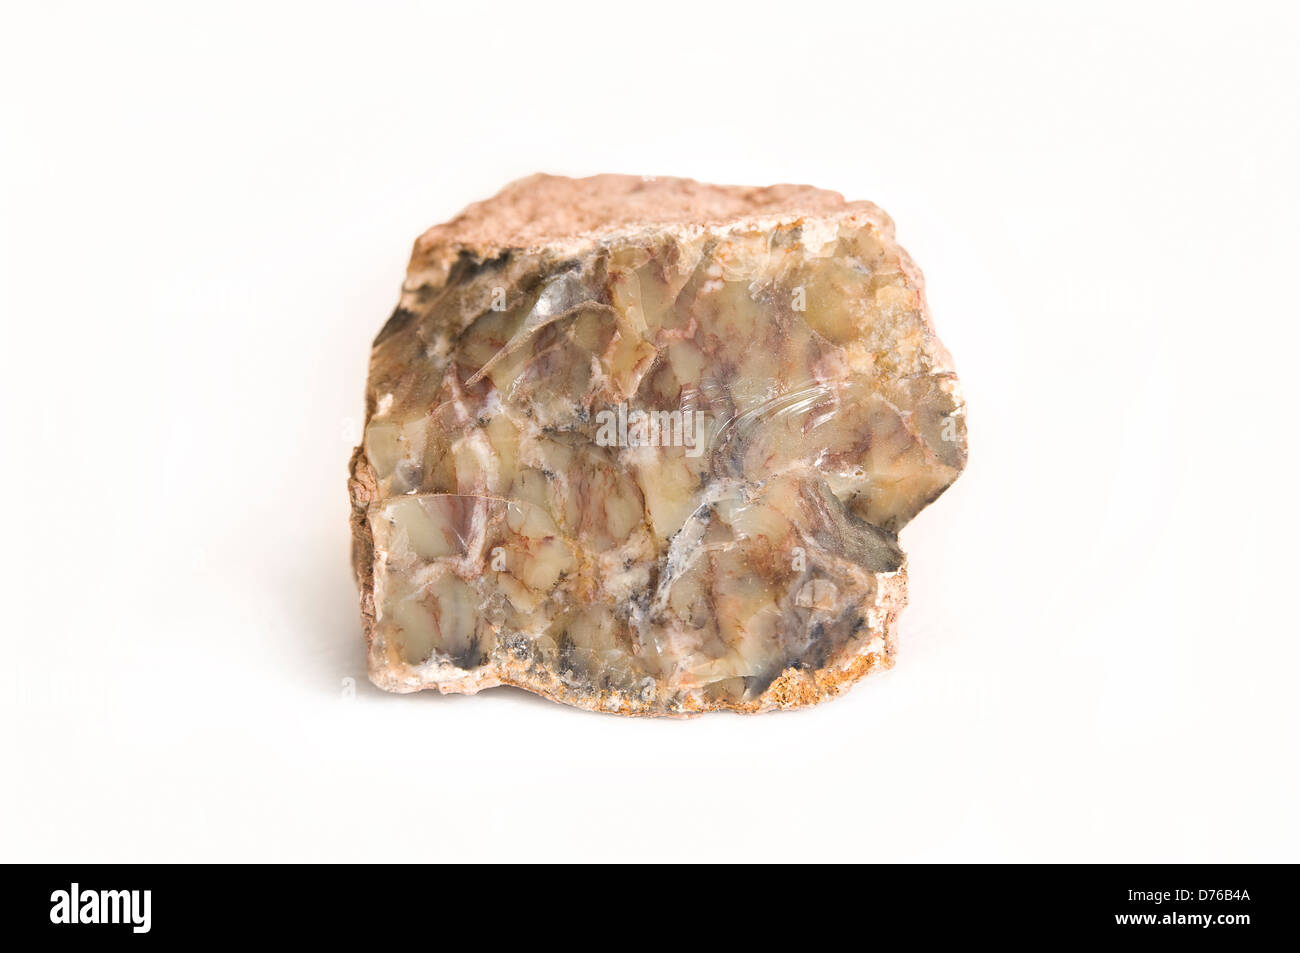 Quartz, marble matrix - Stock Image